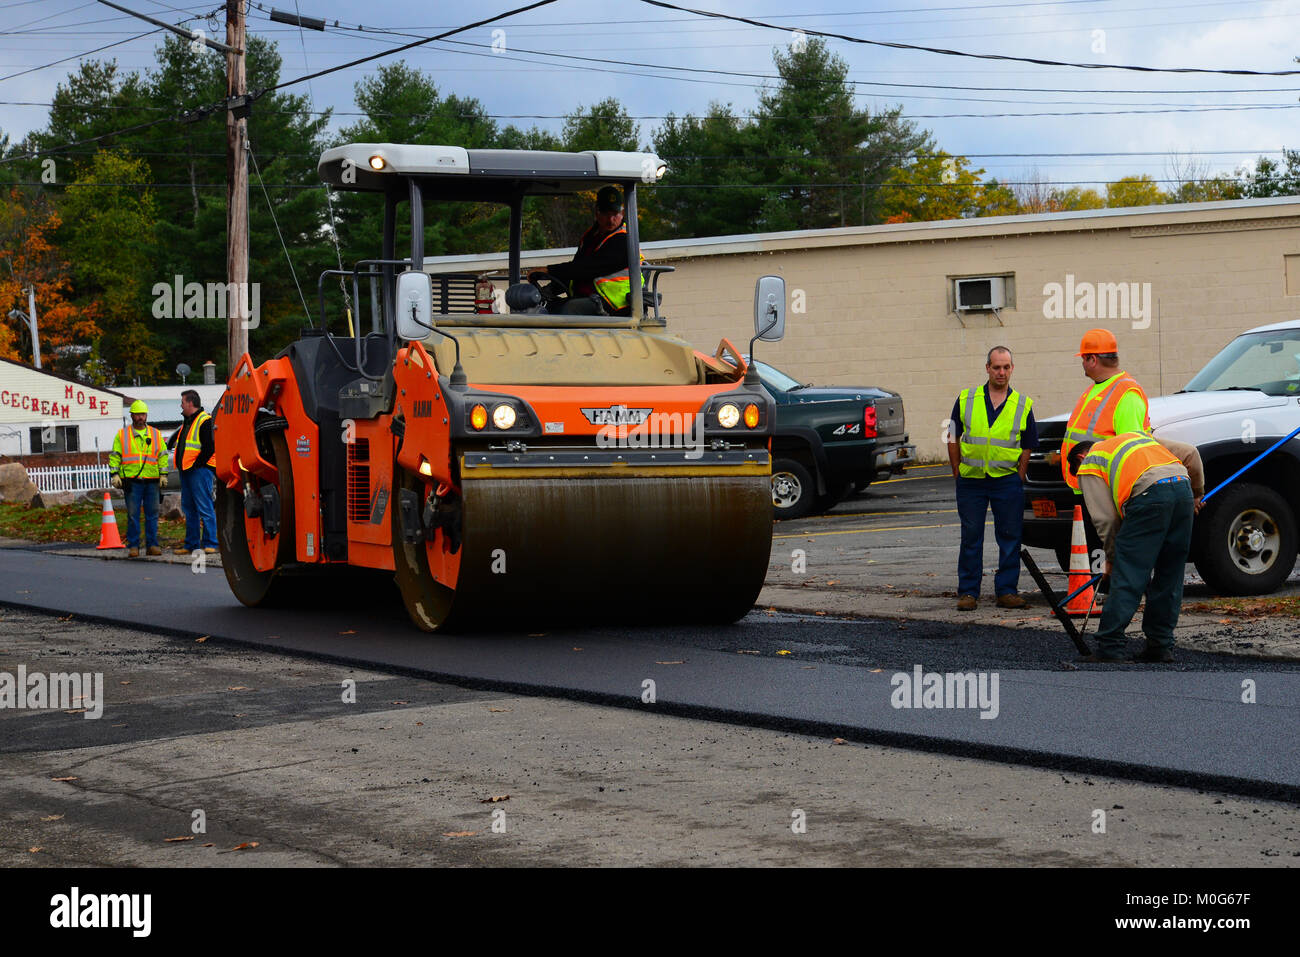 A road crew and equipment resurfacing a street in Speculator, NY USA - Stock Image